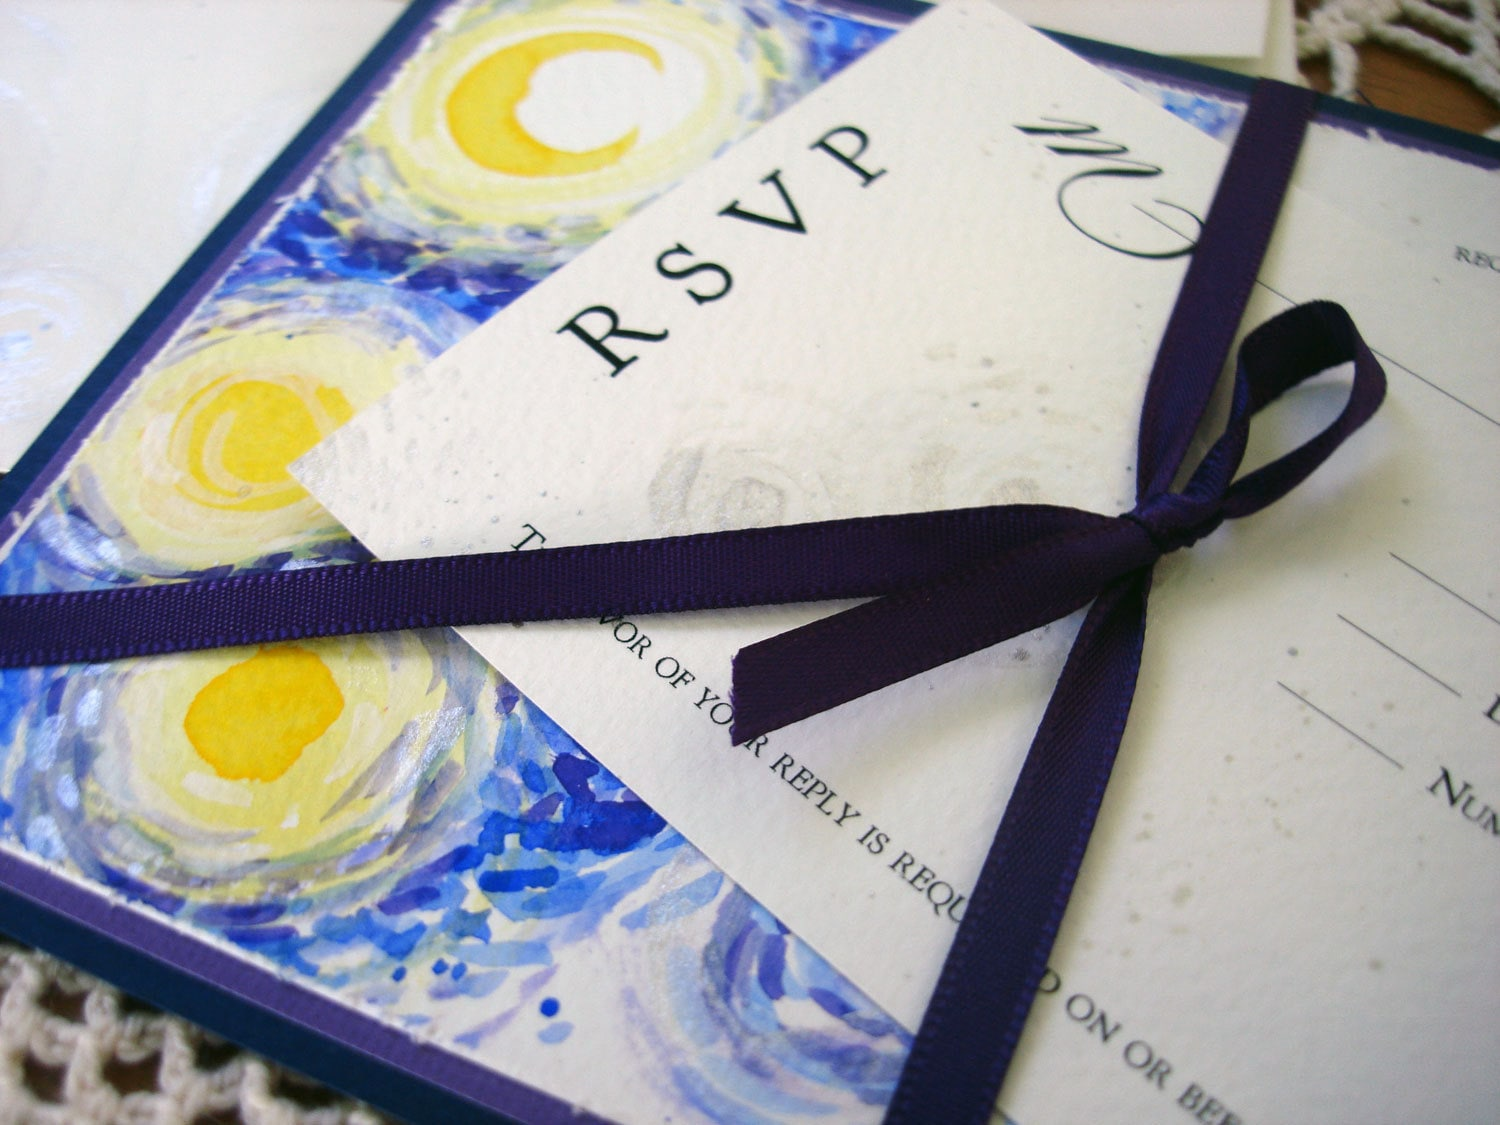 Starry Night Wedding Invitations is one of our best ideas you might choose for invitation design